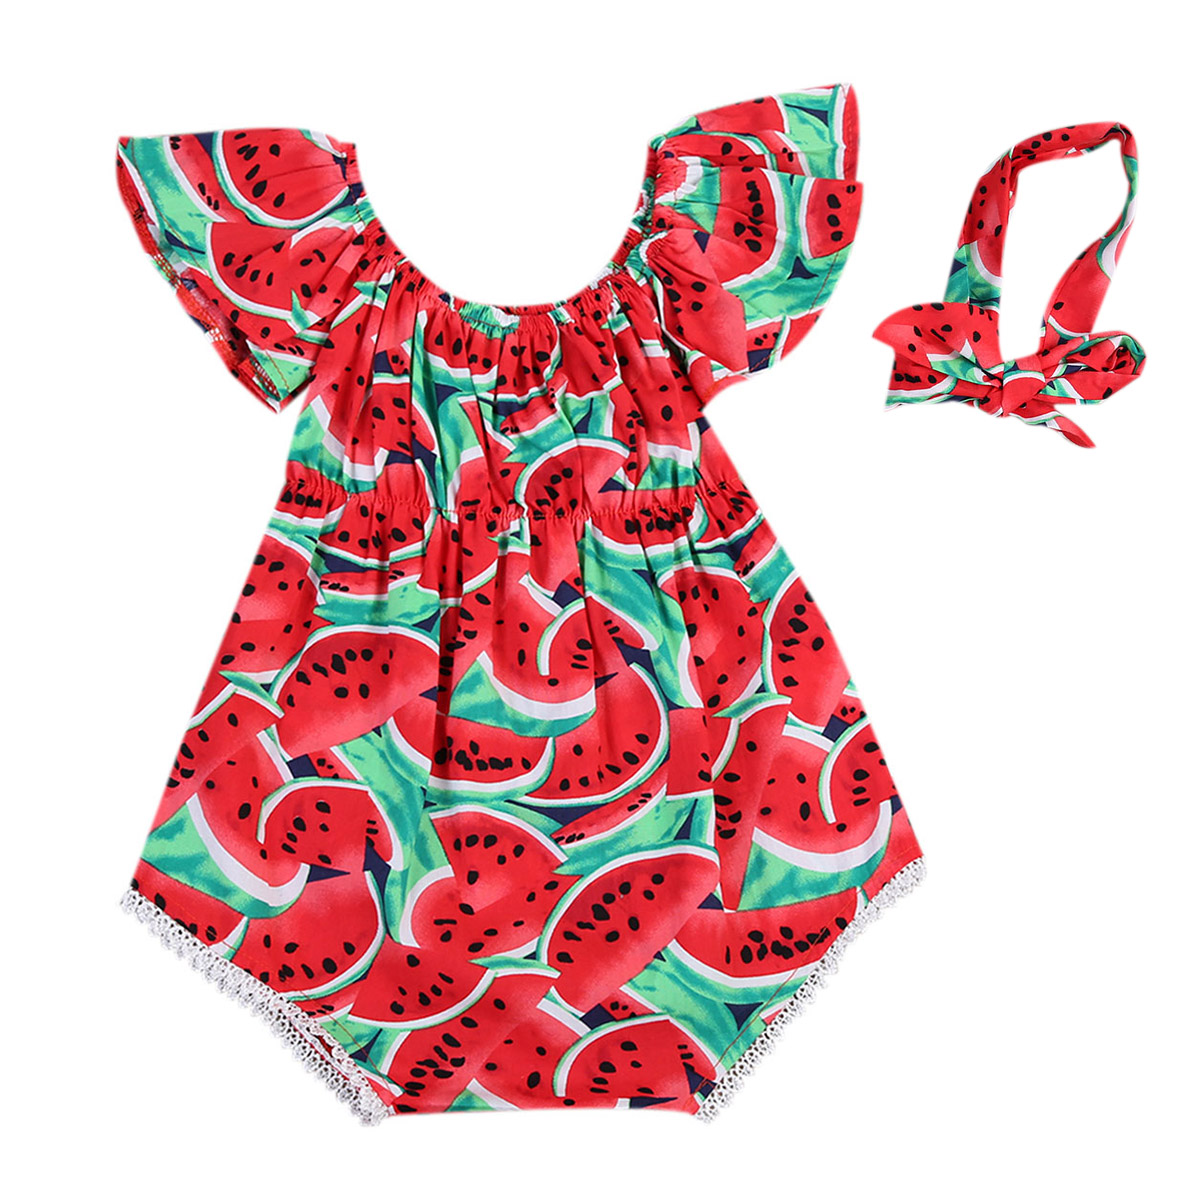 Newborn Baby Girls Watermelon Clothes Kids Summer Casual Sleeveless Red Romper Jumpsuit Outfits Playsuit 0-24M summer 2017 baby kids girl boy infant summer sleeveless romper harlan jumpsuit clothes outfits 0 24m